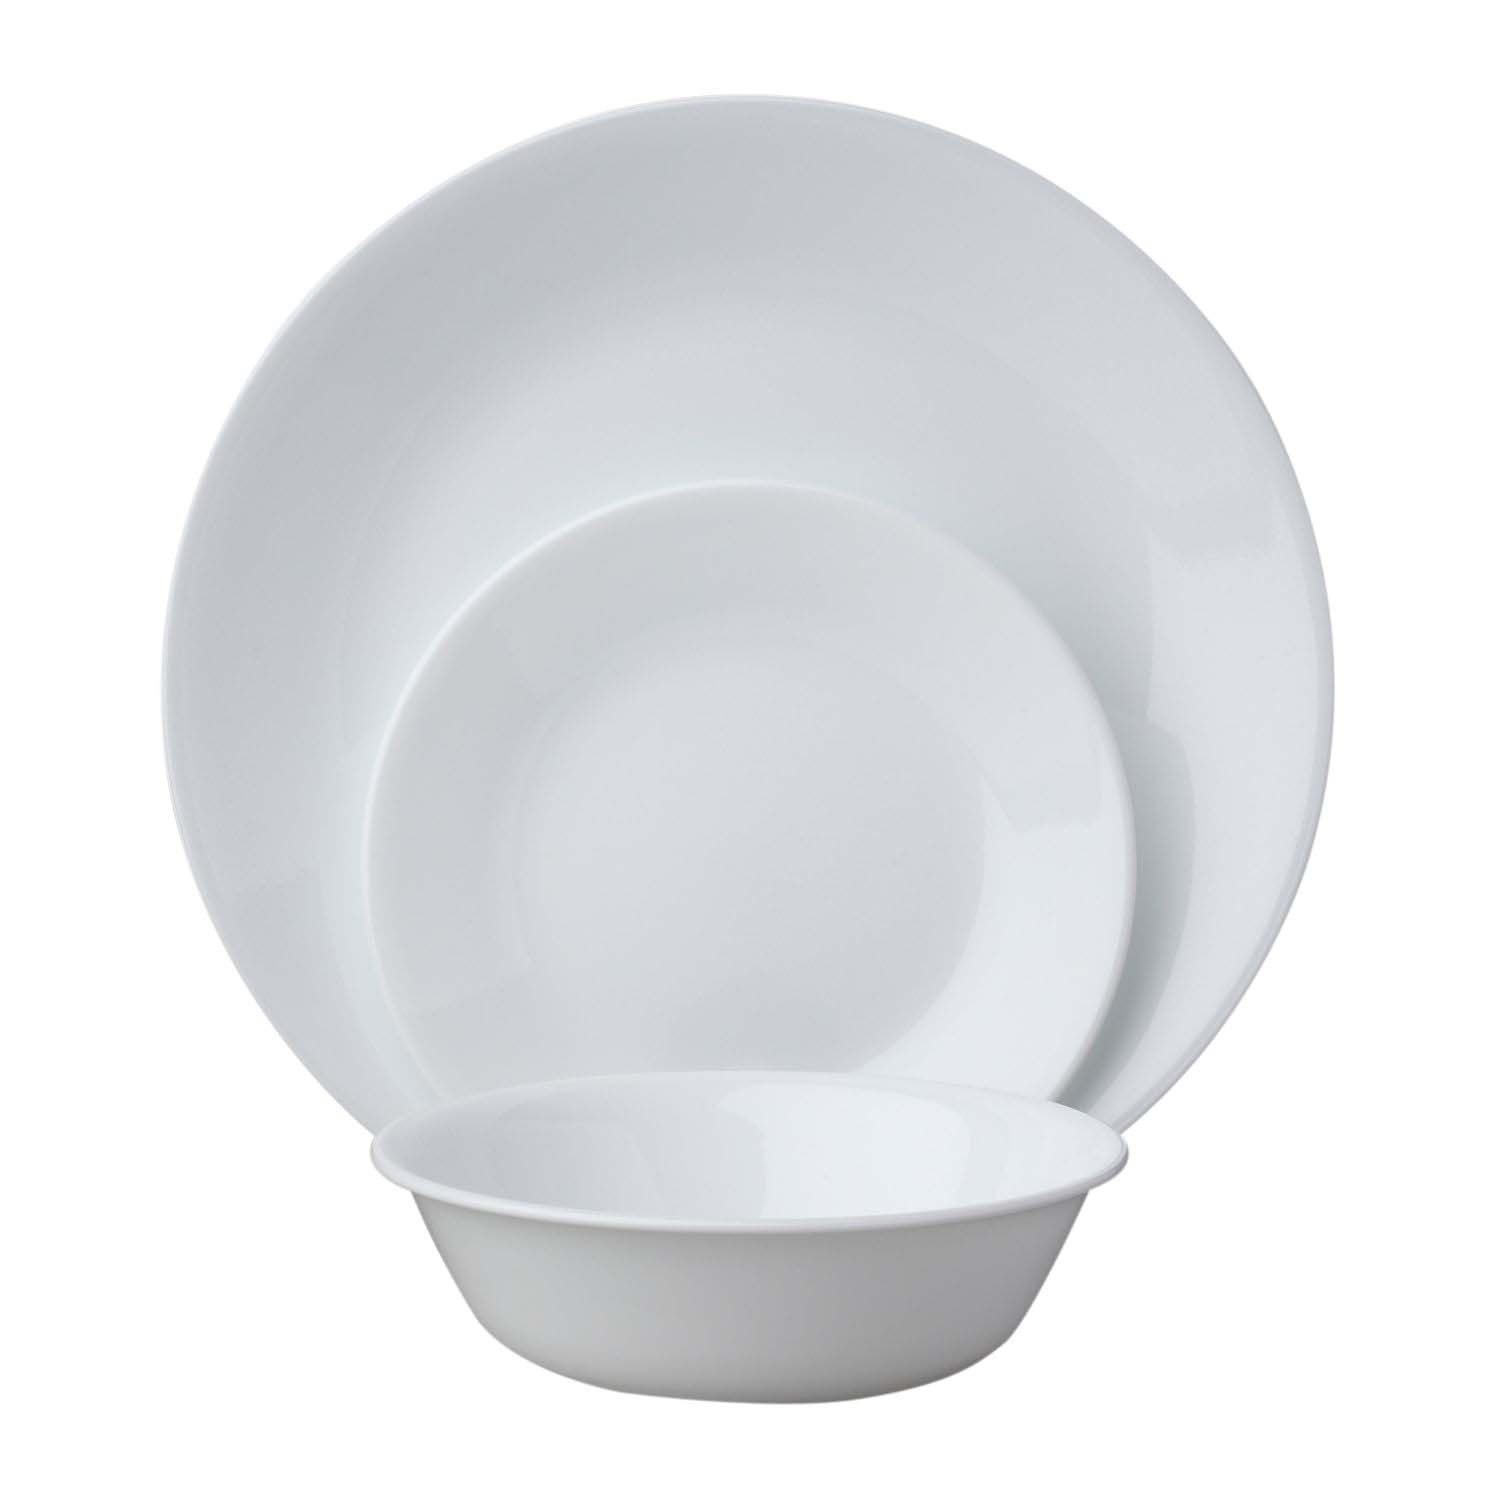 Corelle 18-Piece Vitrelle Glass Winter Frost White Chip and Break Resisitant Dinner Set, Service for 6 World Kitchen 1088609